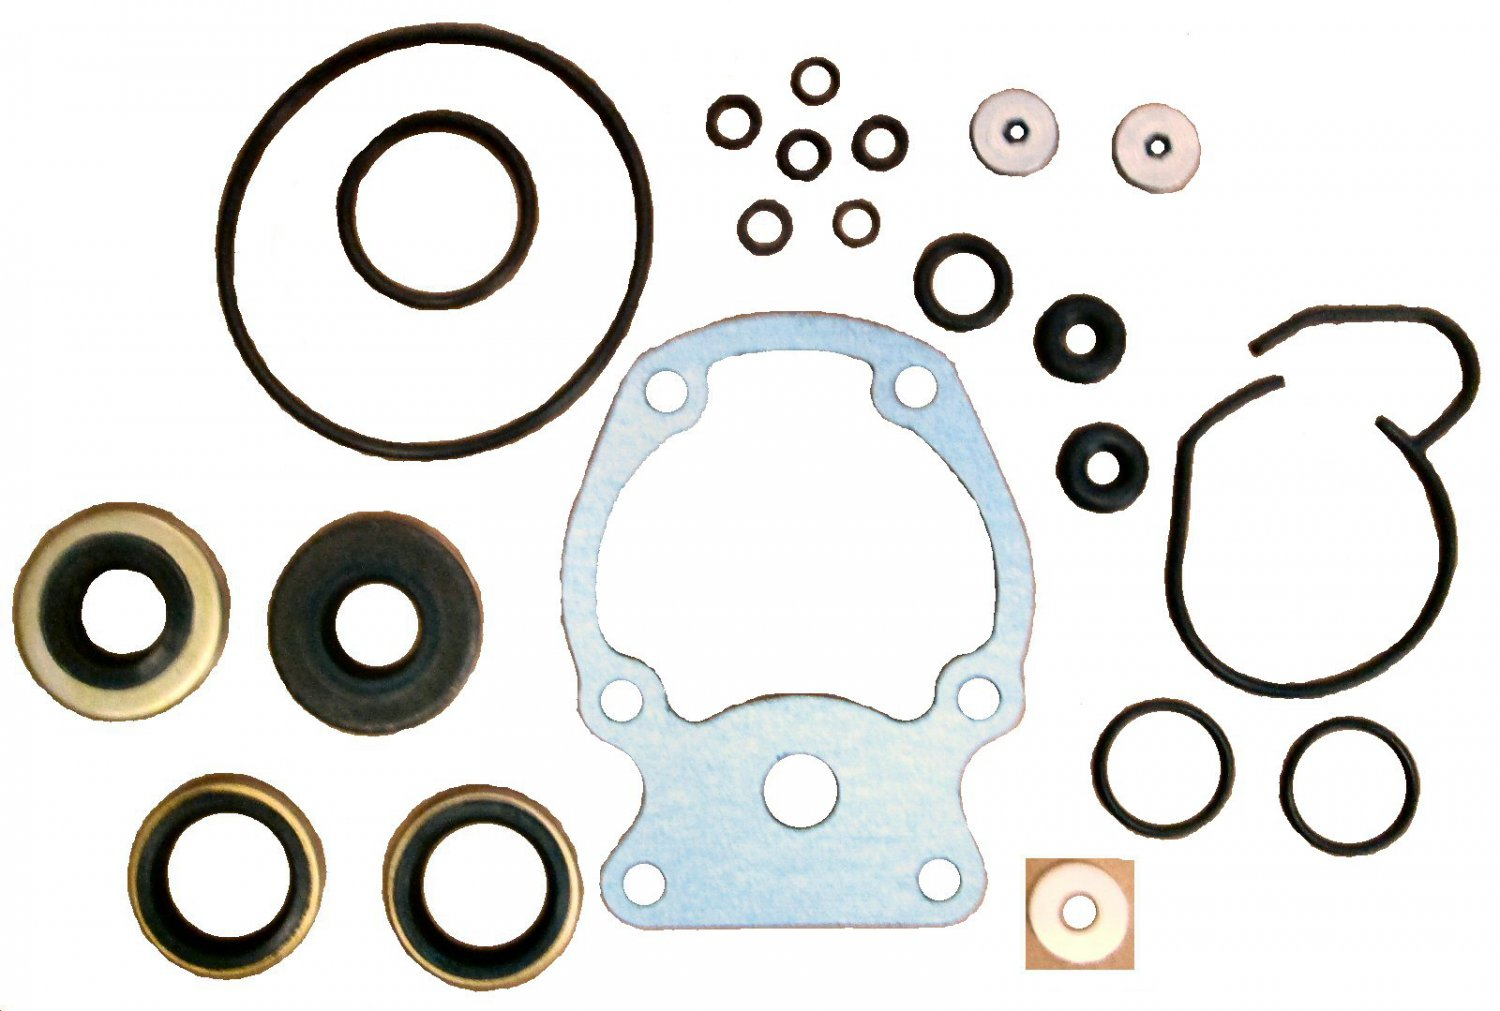 Lower Gear Case Seal Kit for Johnson Evinrude 20-35 HP (TM2658)